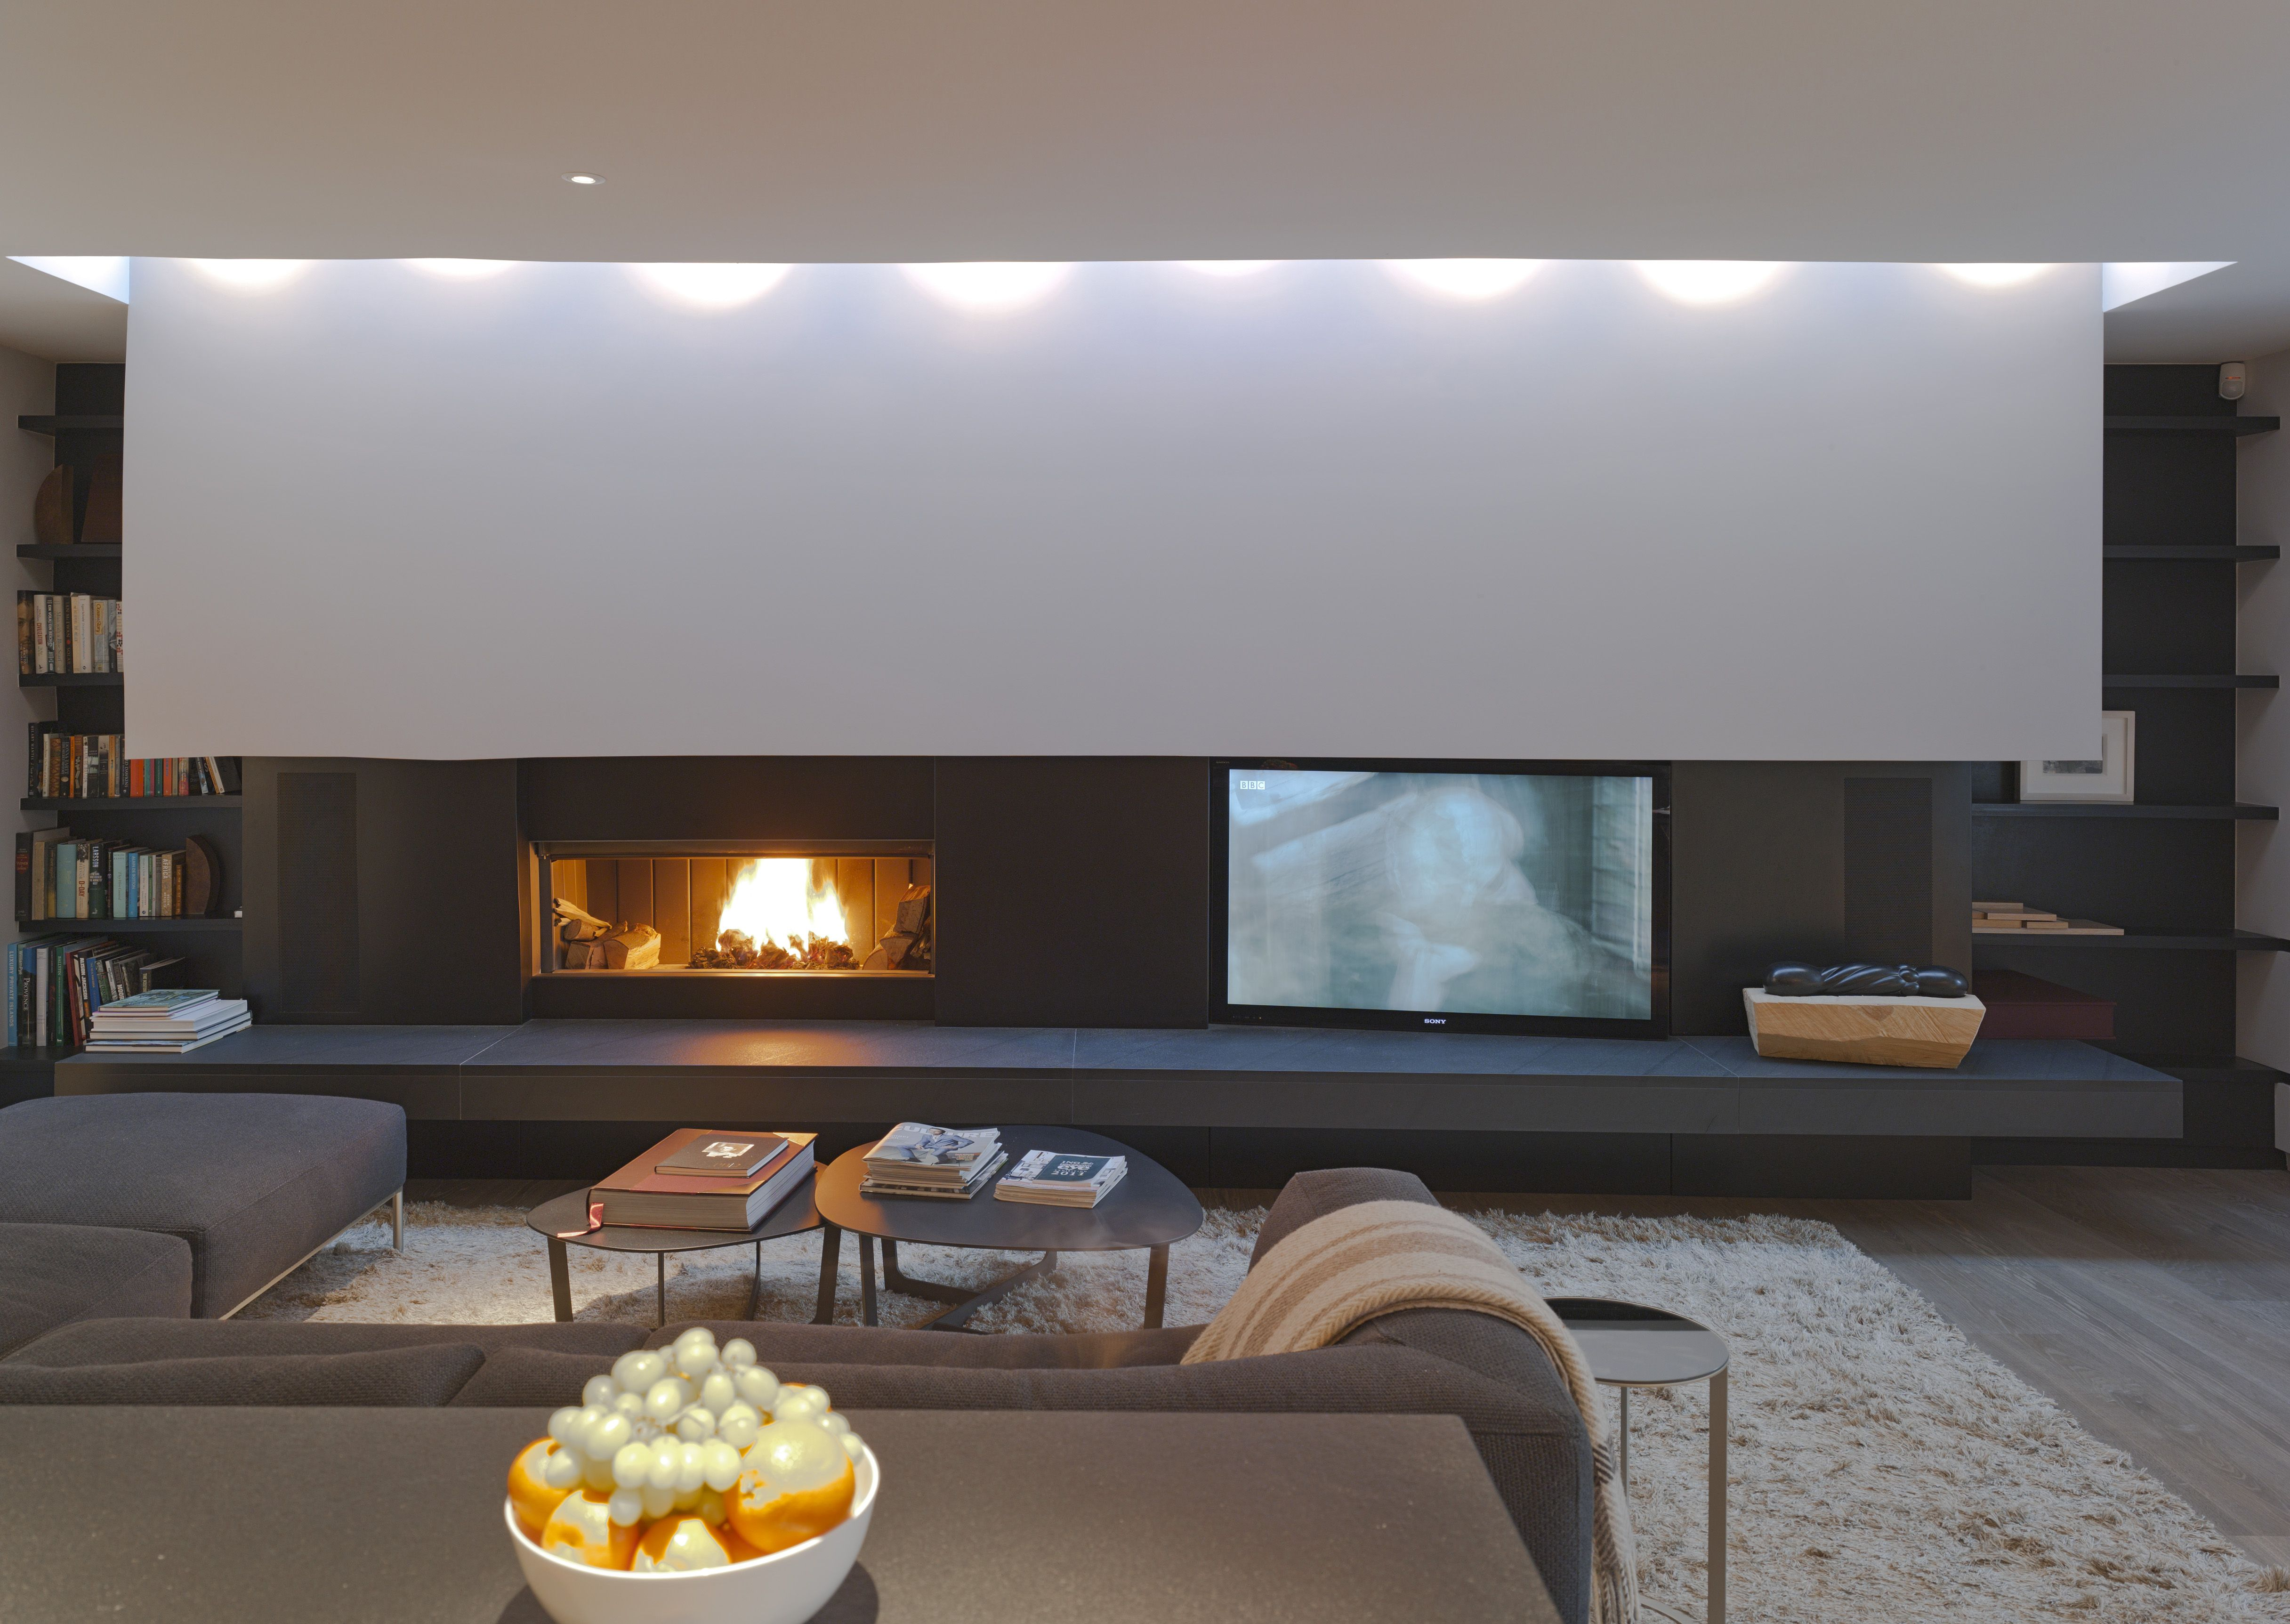 Mclean Quinlan Architects London Winchester Contemporary House Living Room With Fireplace Home